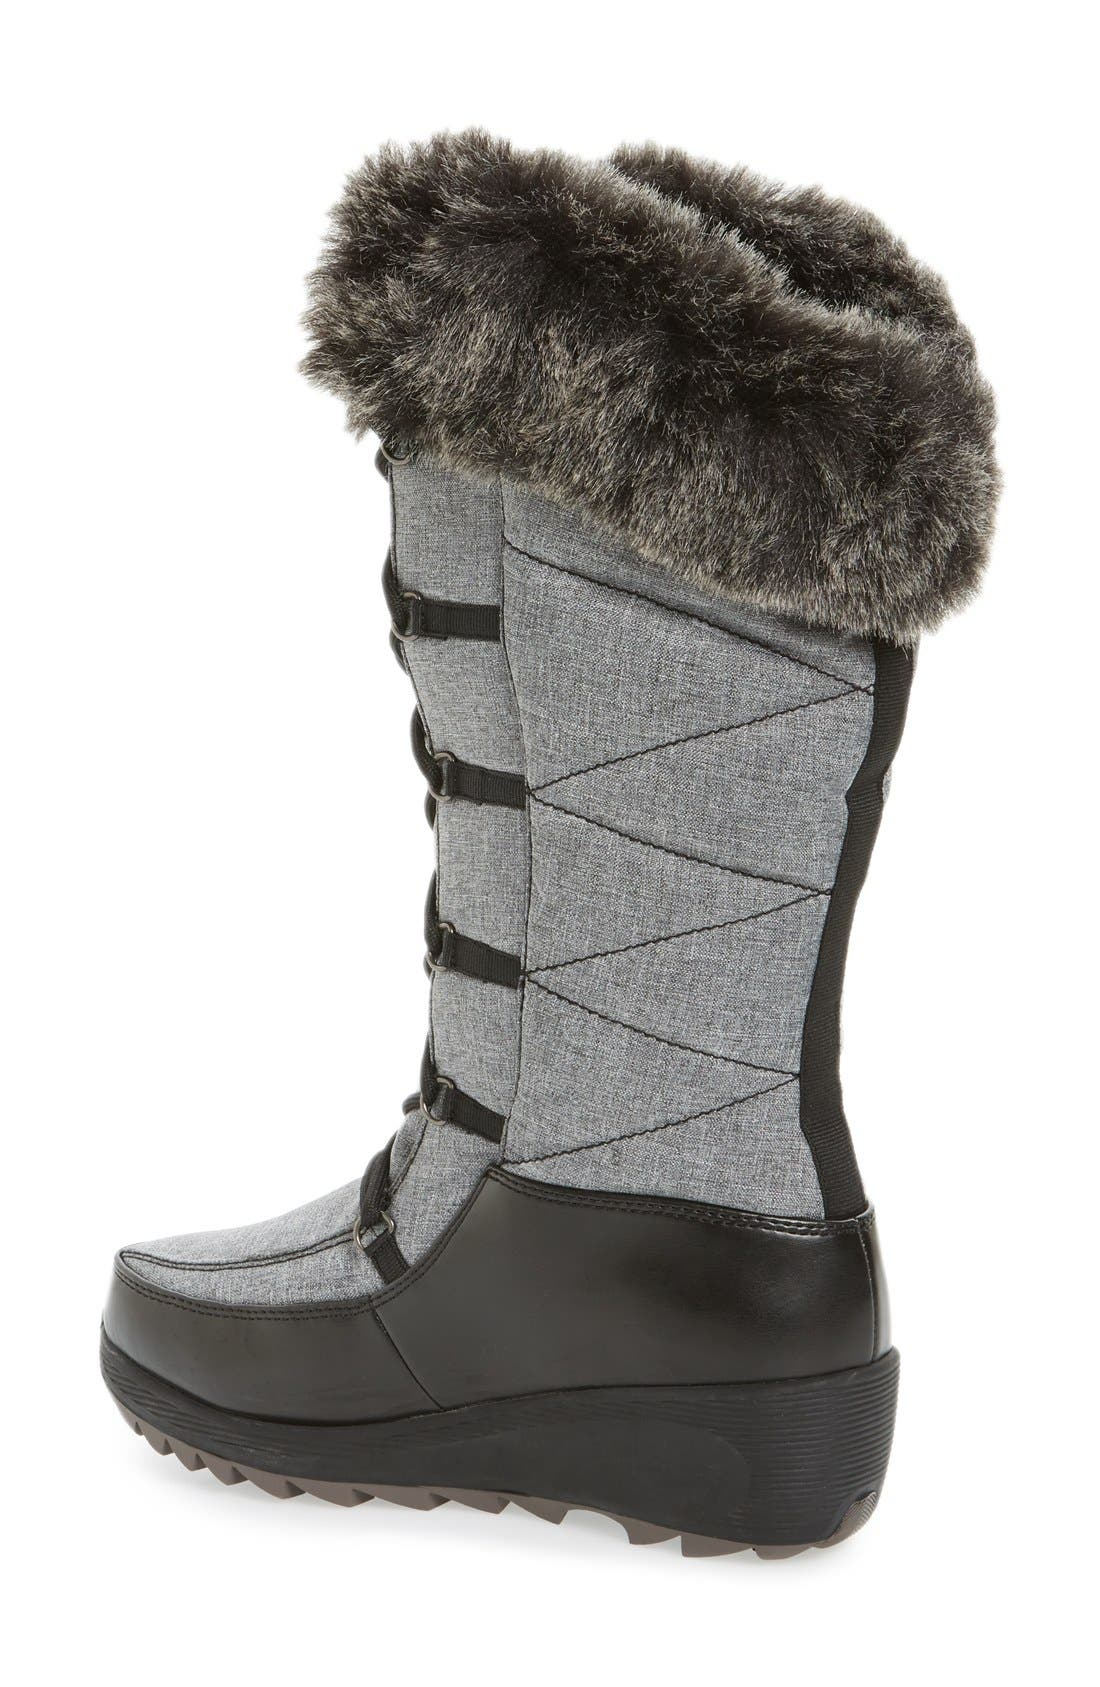 Pinot Waterproof Boot with Faux Fur Cuff,                             Alternate thumbnail 2, color,                             029